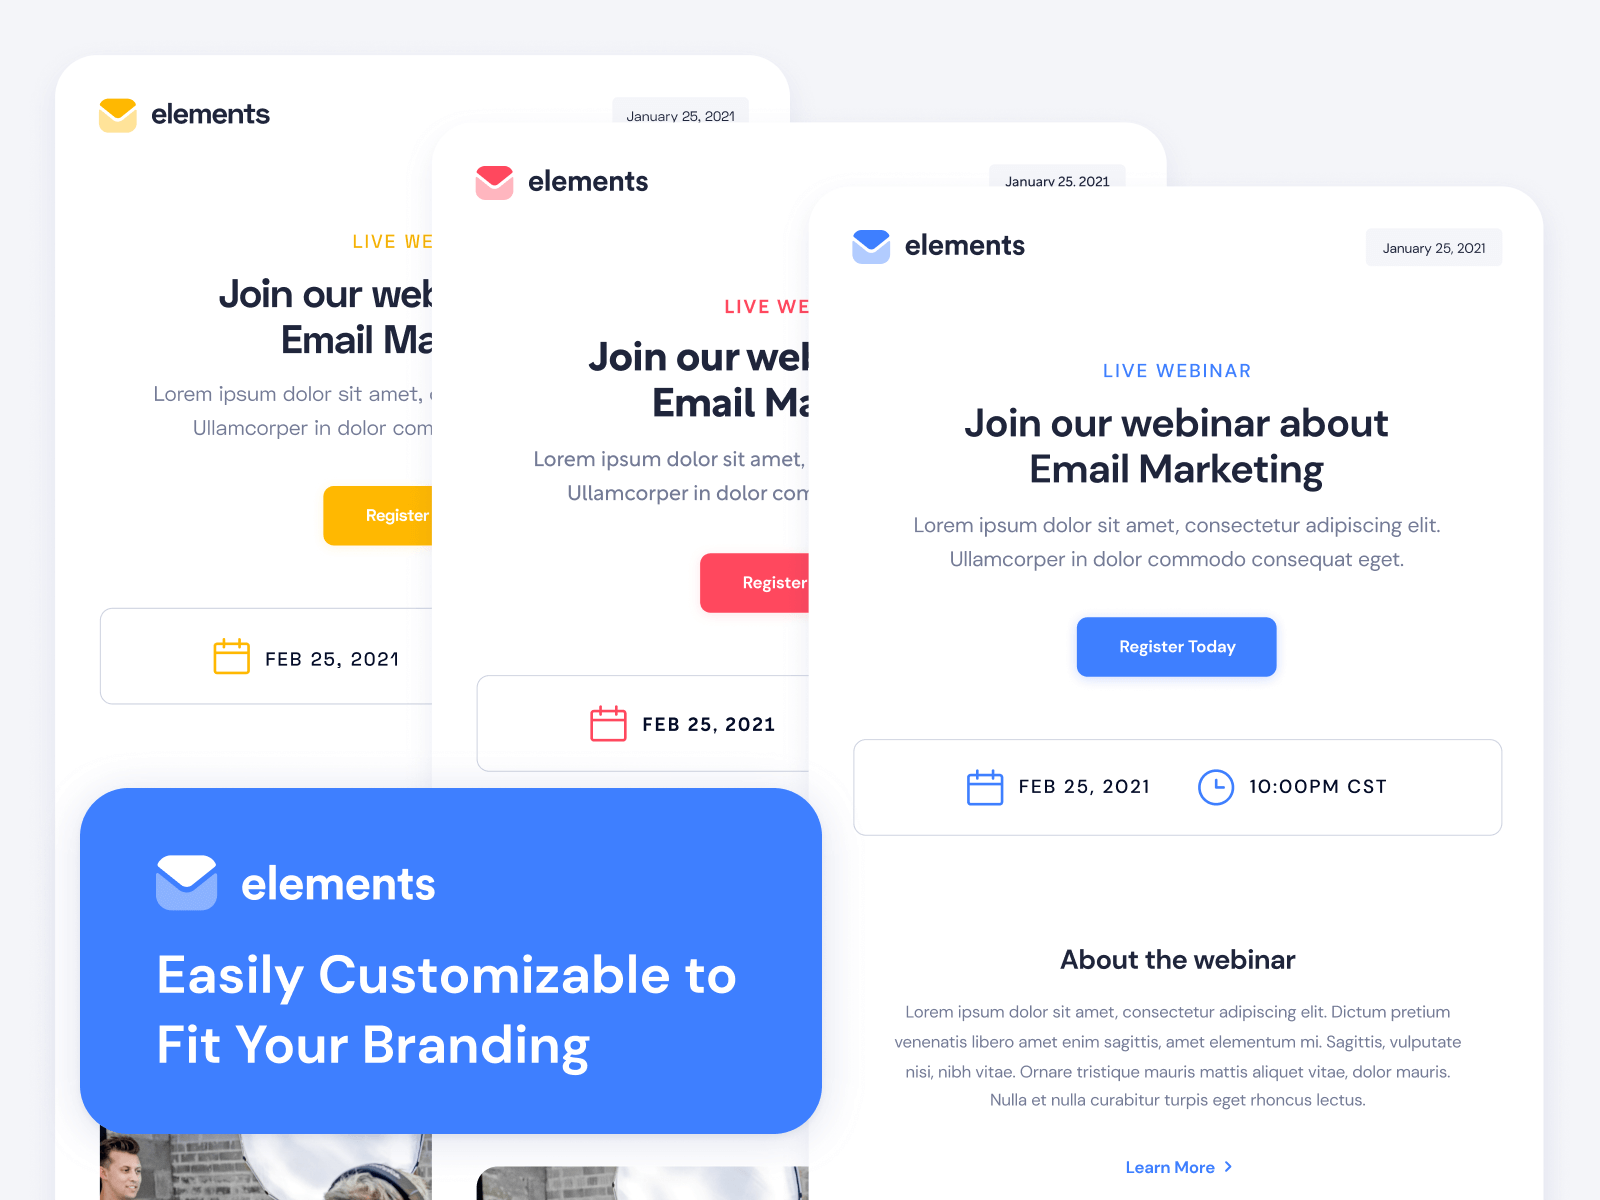 Elements - Customizable HubSpot Email Template